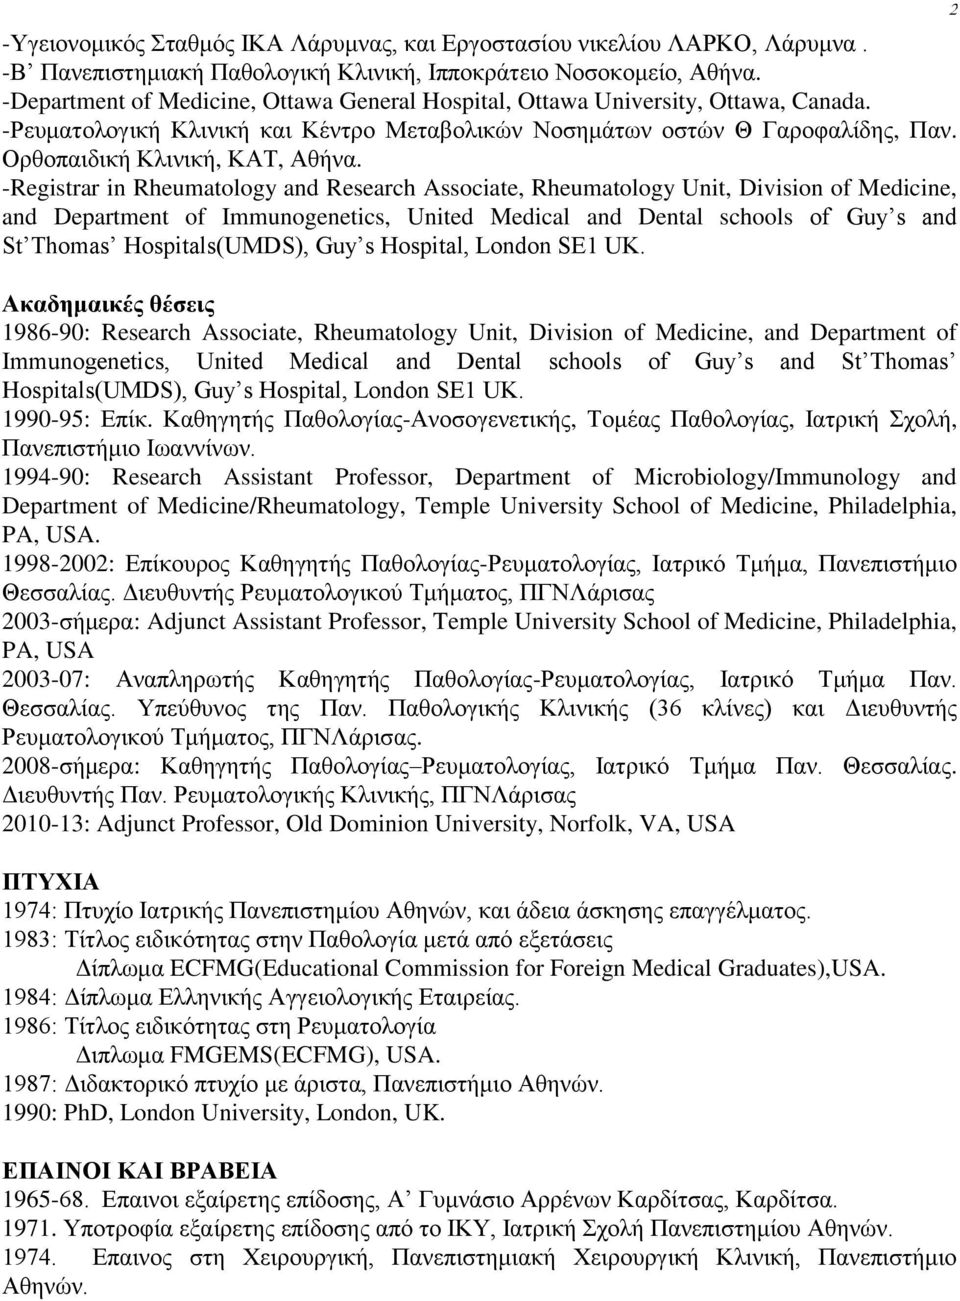 -Registrar in Rheumatology and Research Associate, Rheumatology Unit, Division of Medicine, and Department of Immunogenetics, United Medical and Dental schools of Guy s and St Thomas Hospitals(UMDS),